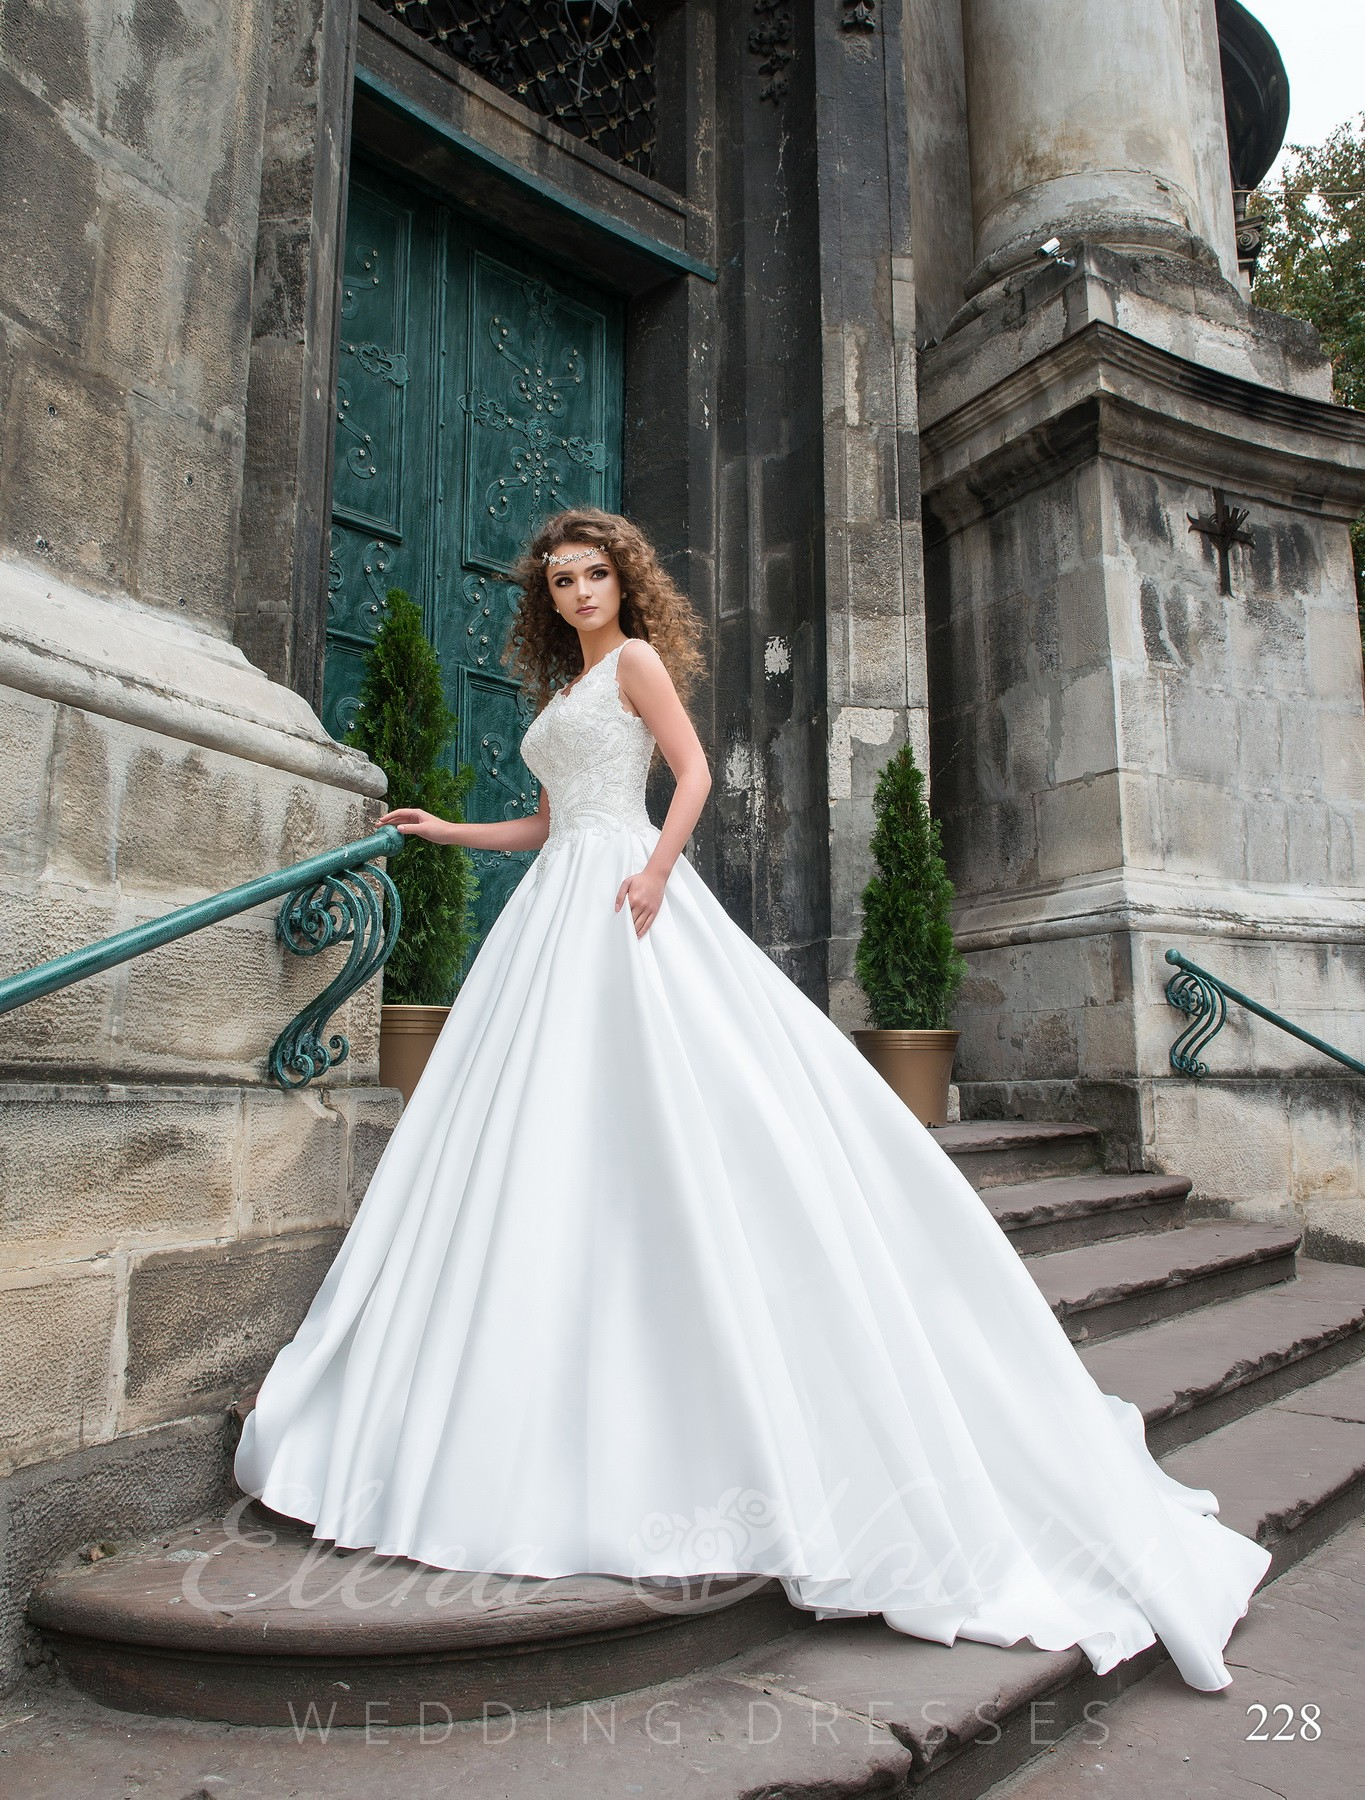 Stylish wedding dress model 228